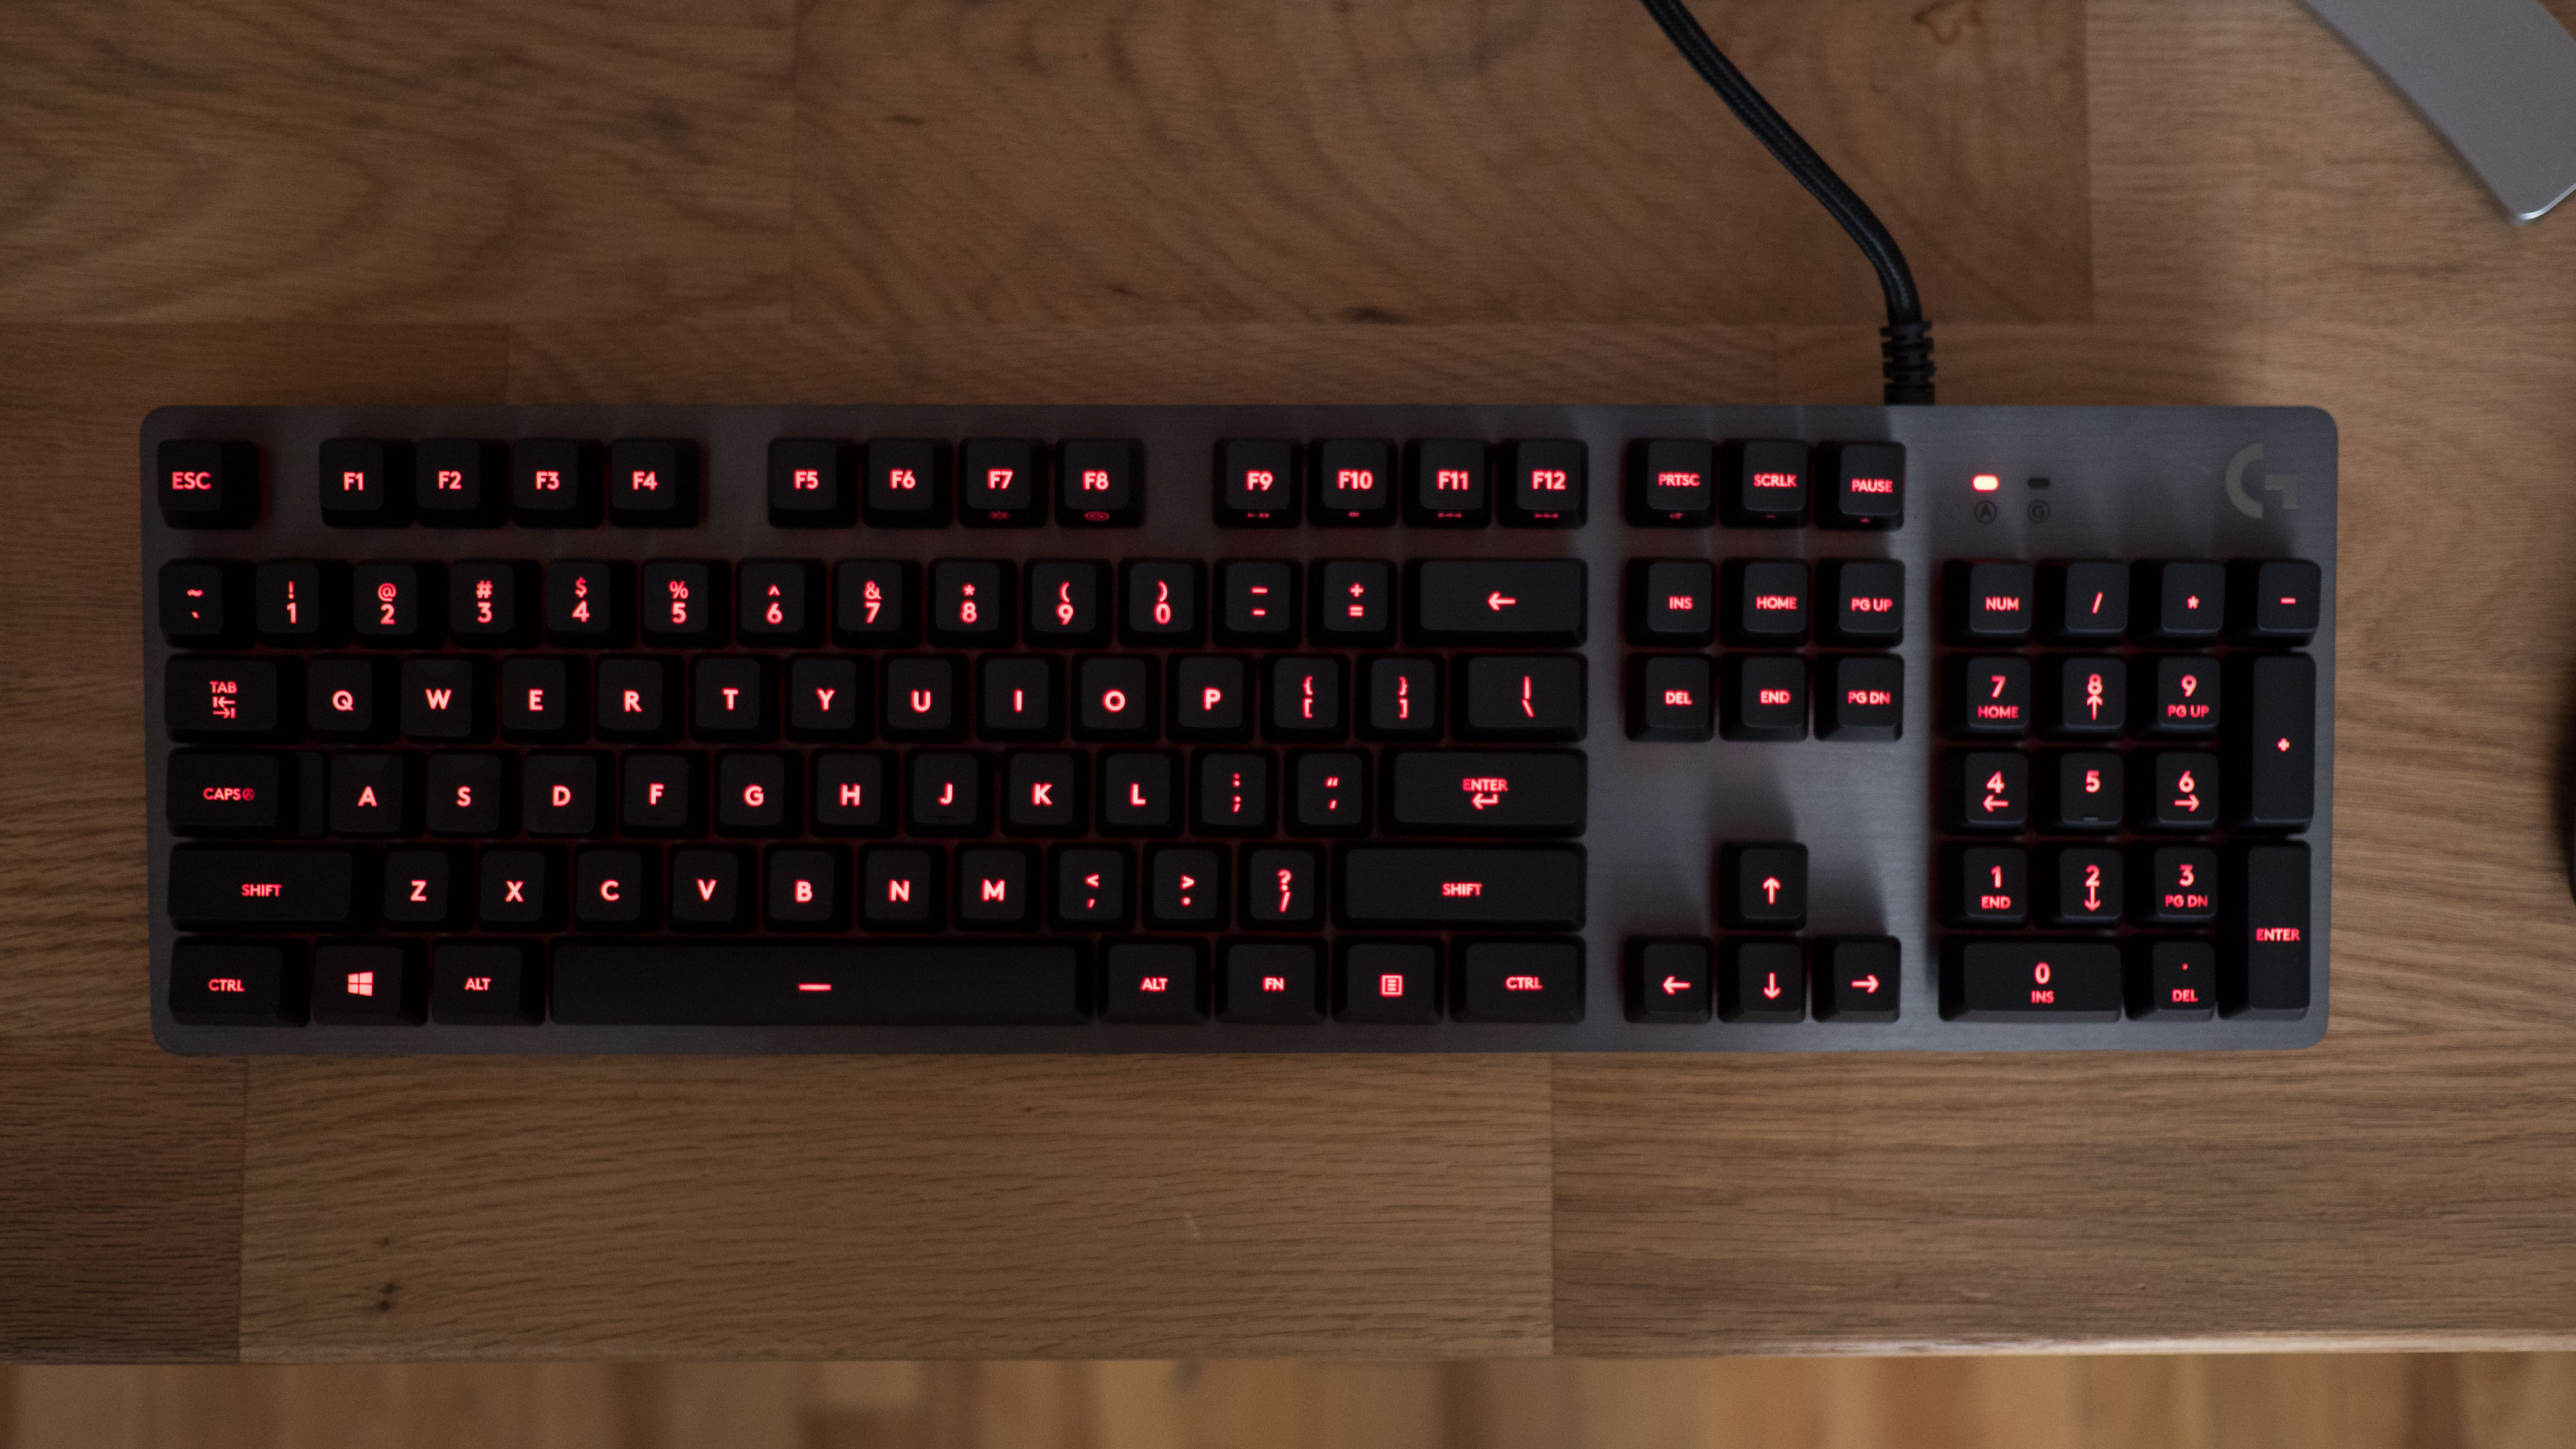 Best gaming keyboards 2017: The greatest keyboards for gamers